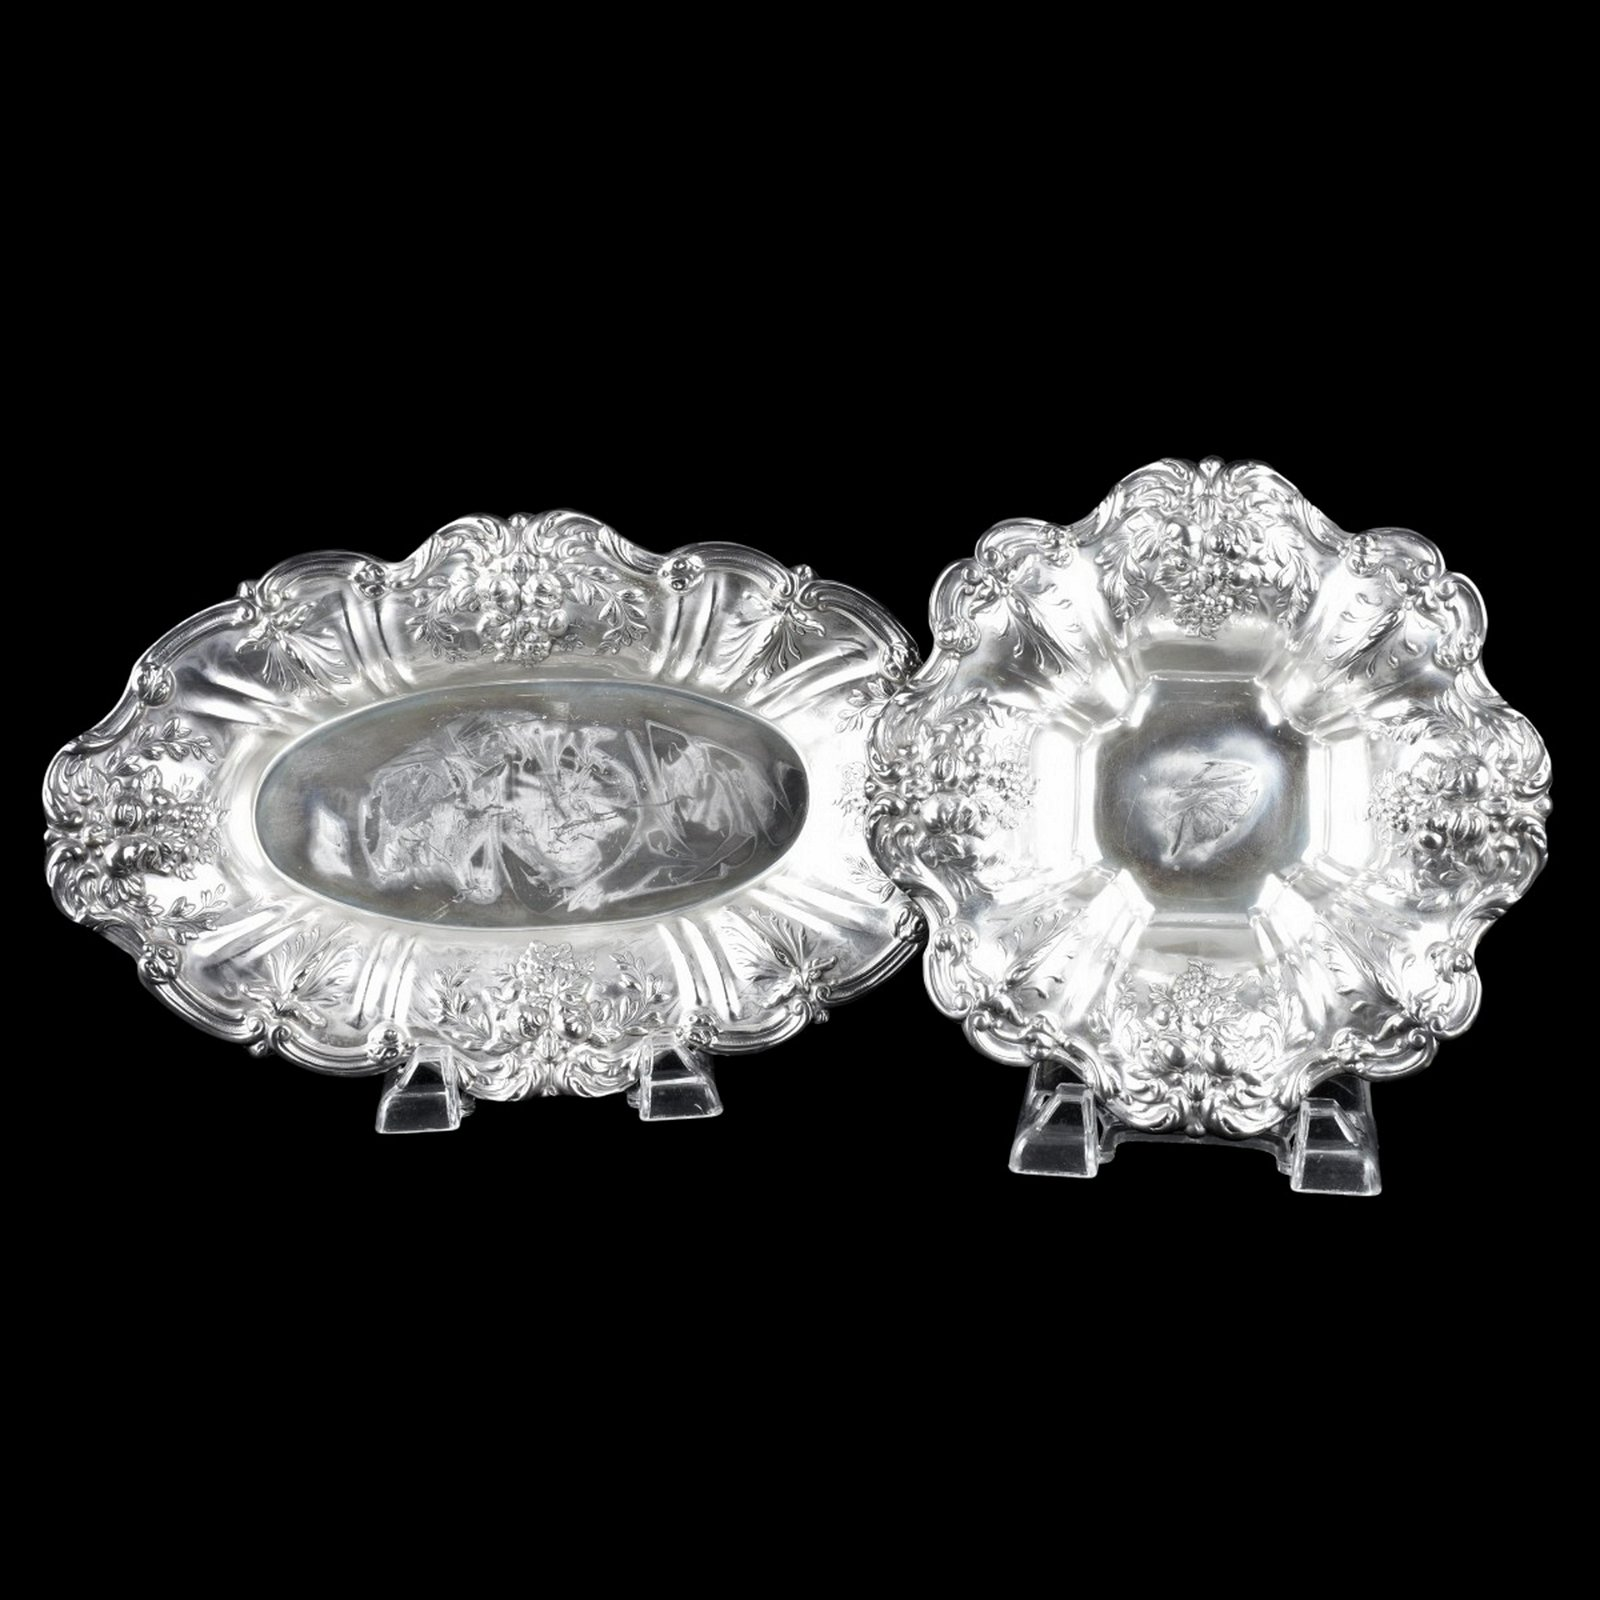 Two (2) Reed and Barton Sterling Silver Dishes